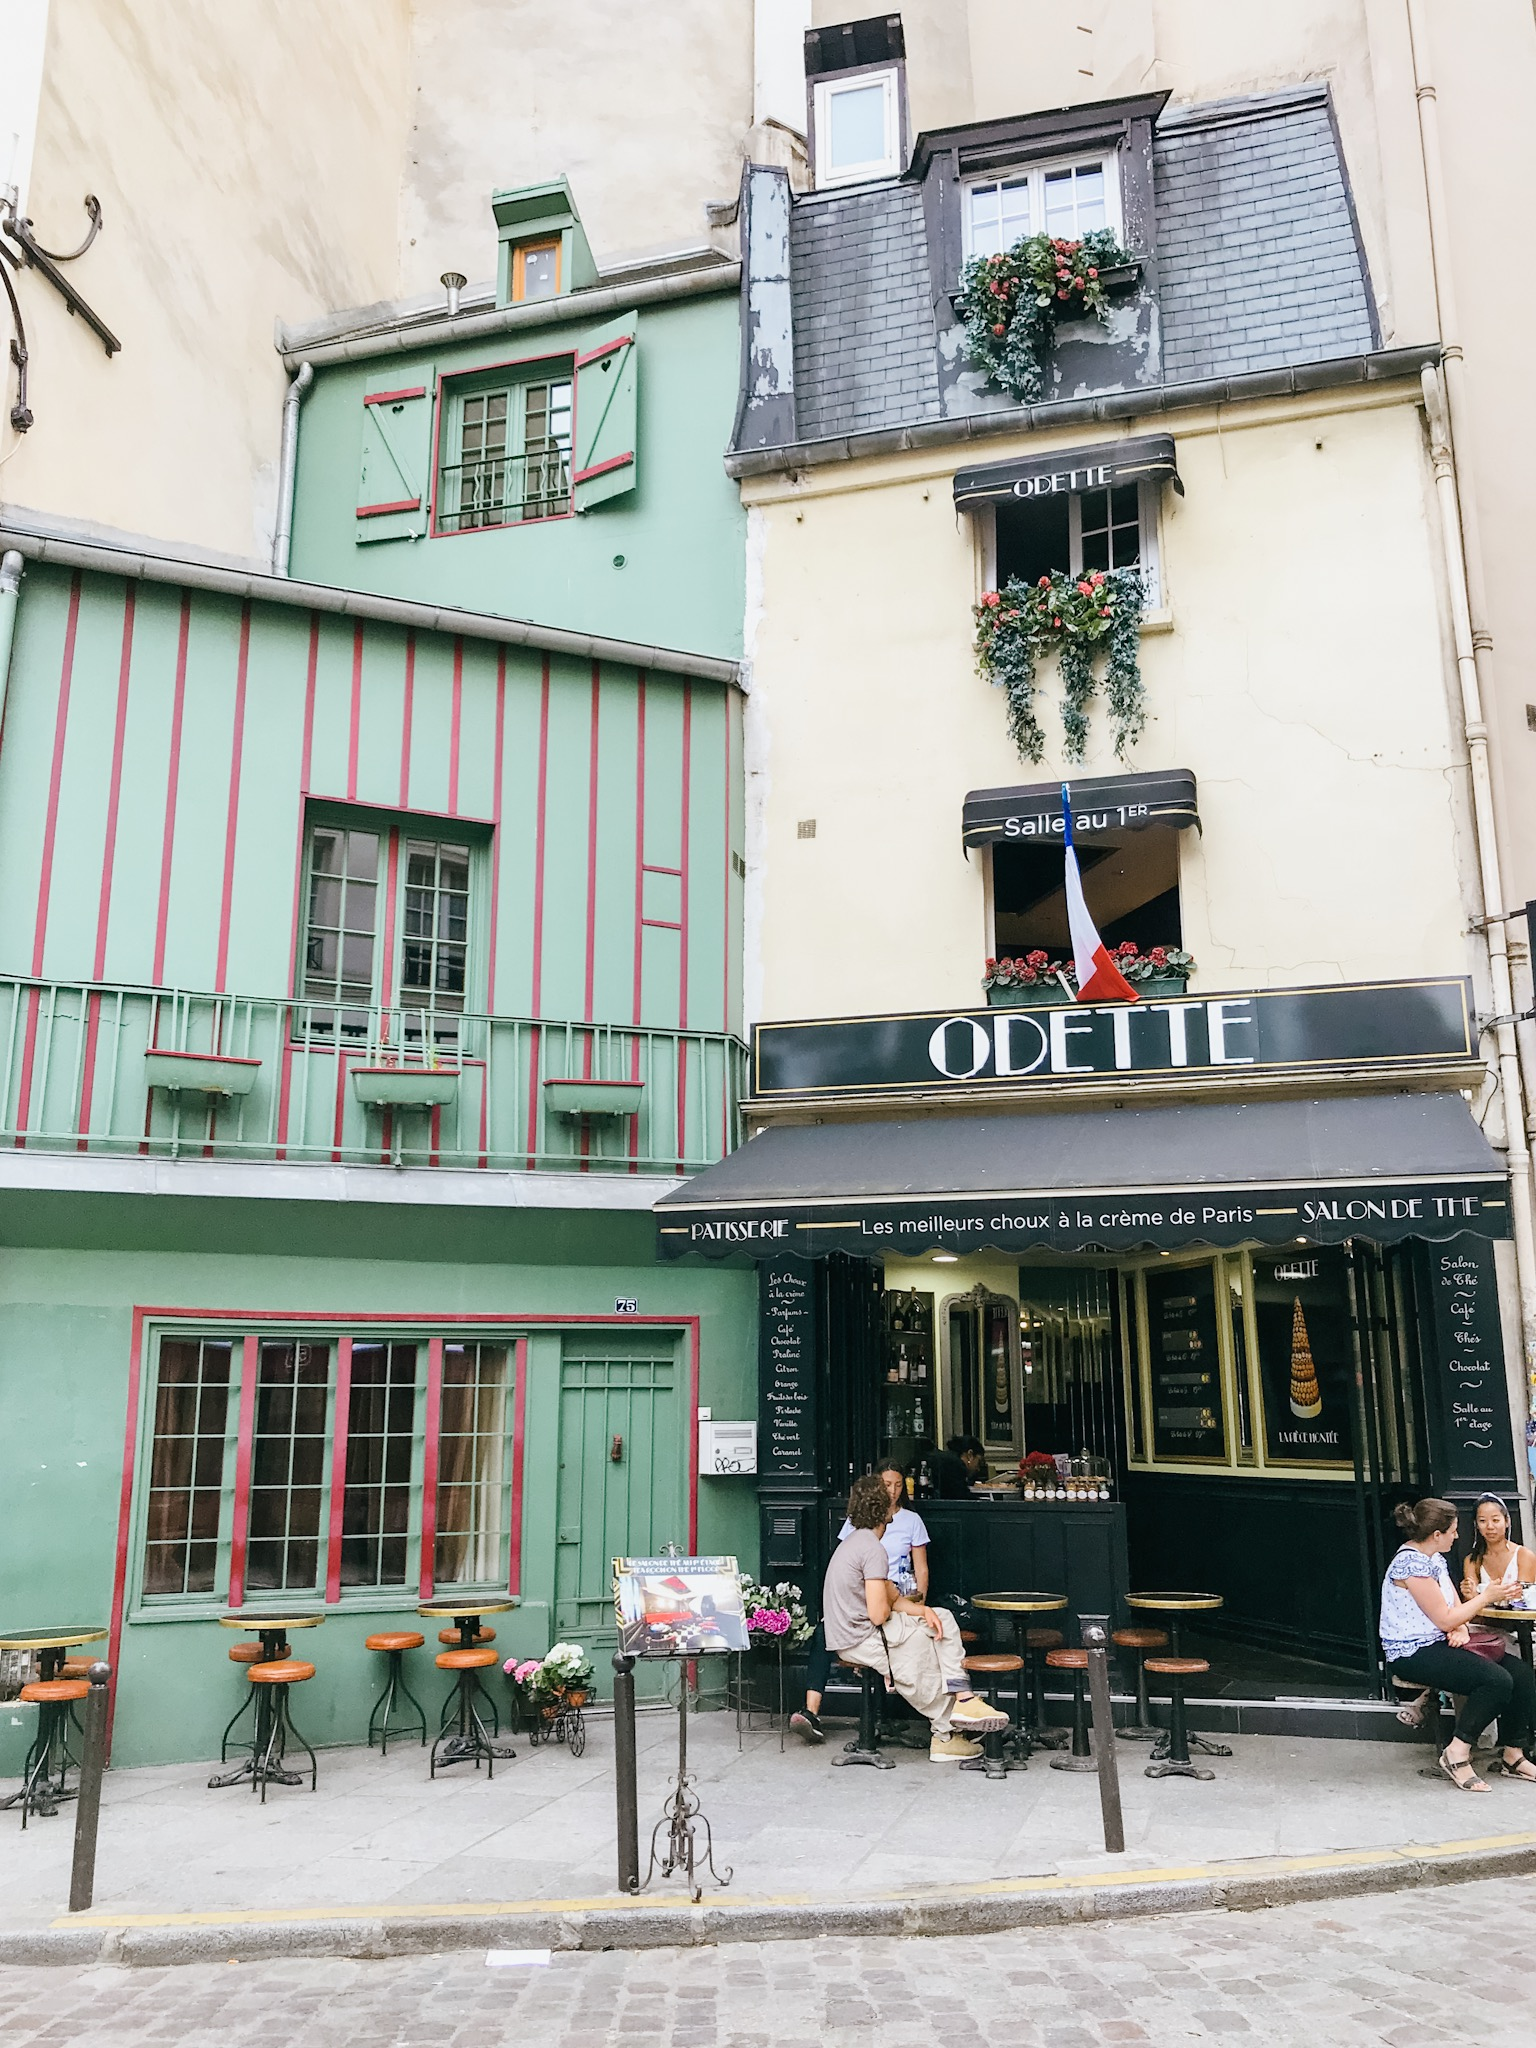 paris france odette patisserie